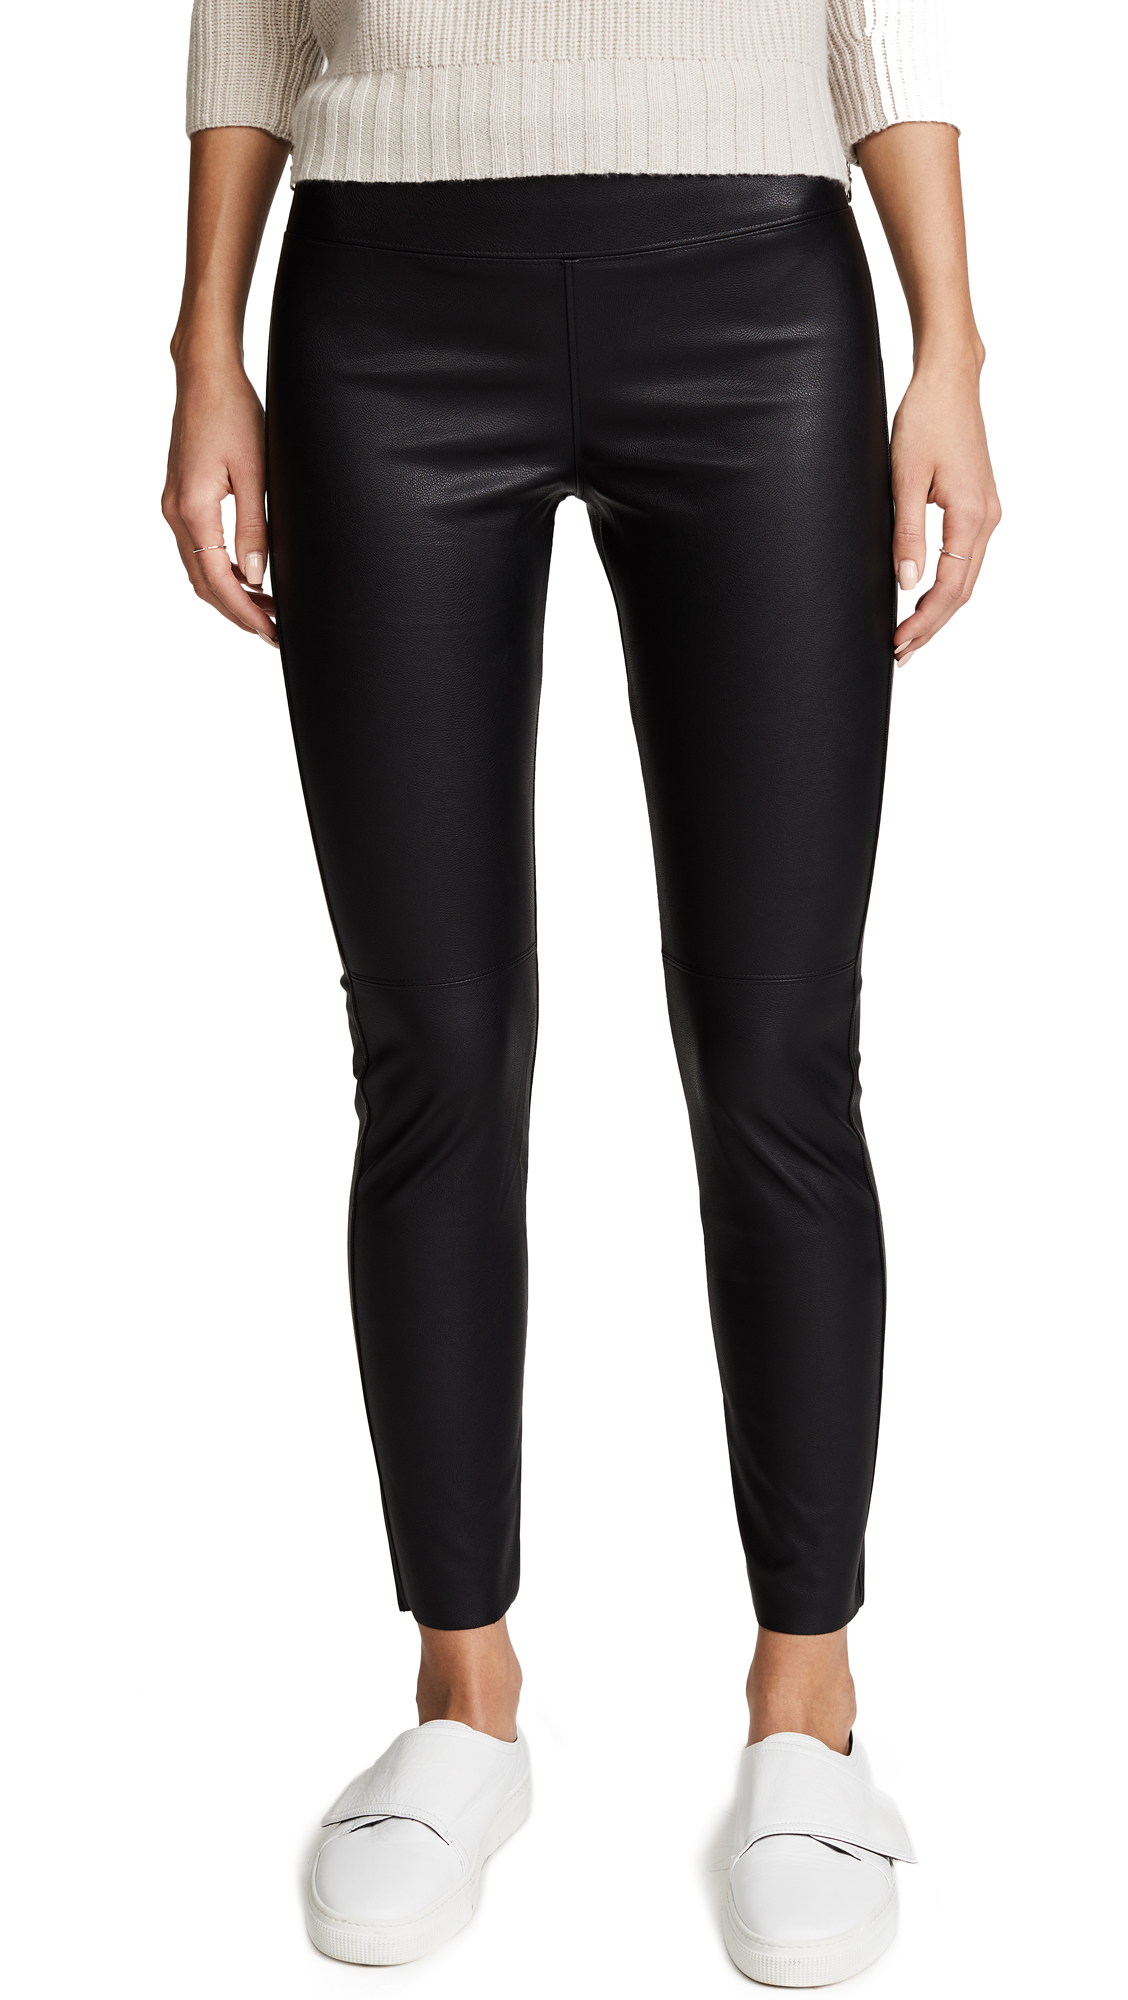 David Lerner Gemma Straight Leg Skimmer Pants - Classic Black